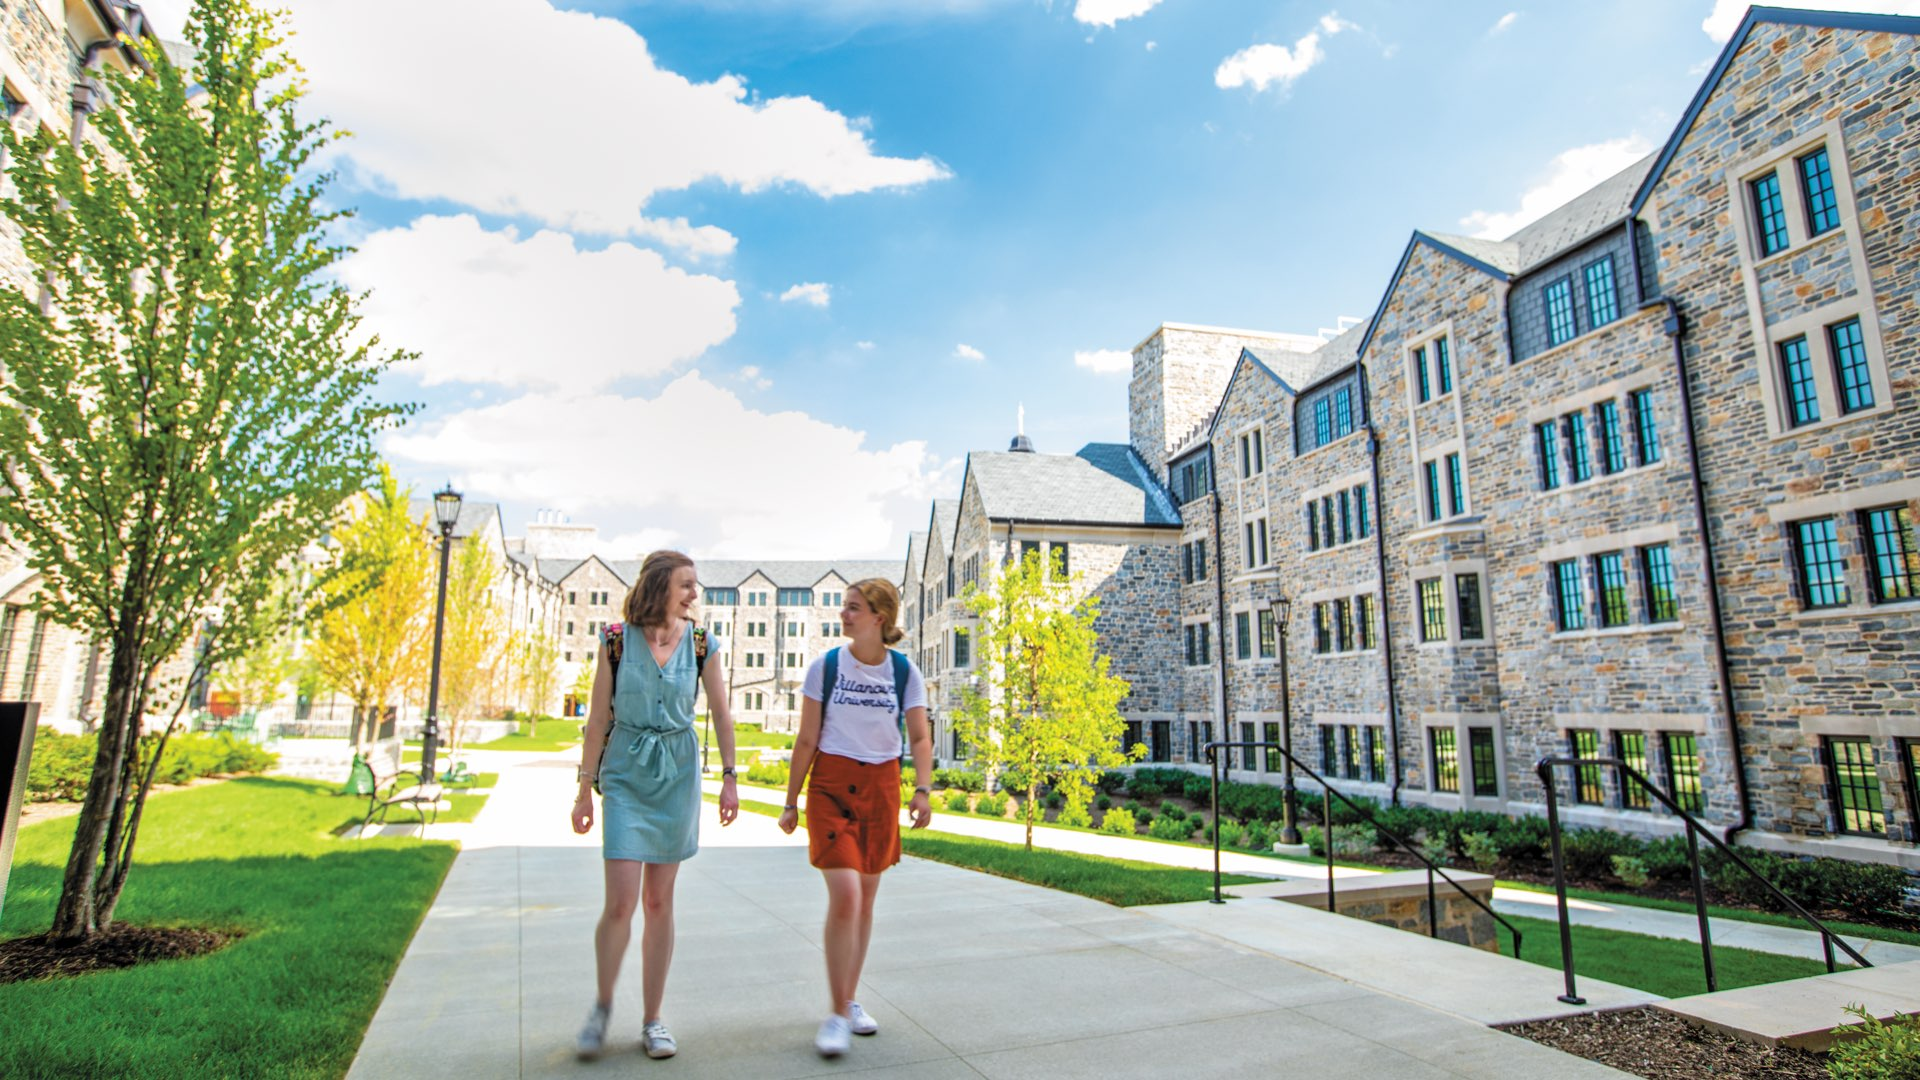 Two female students in backpacks walking through The Commons on a bright sunny day